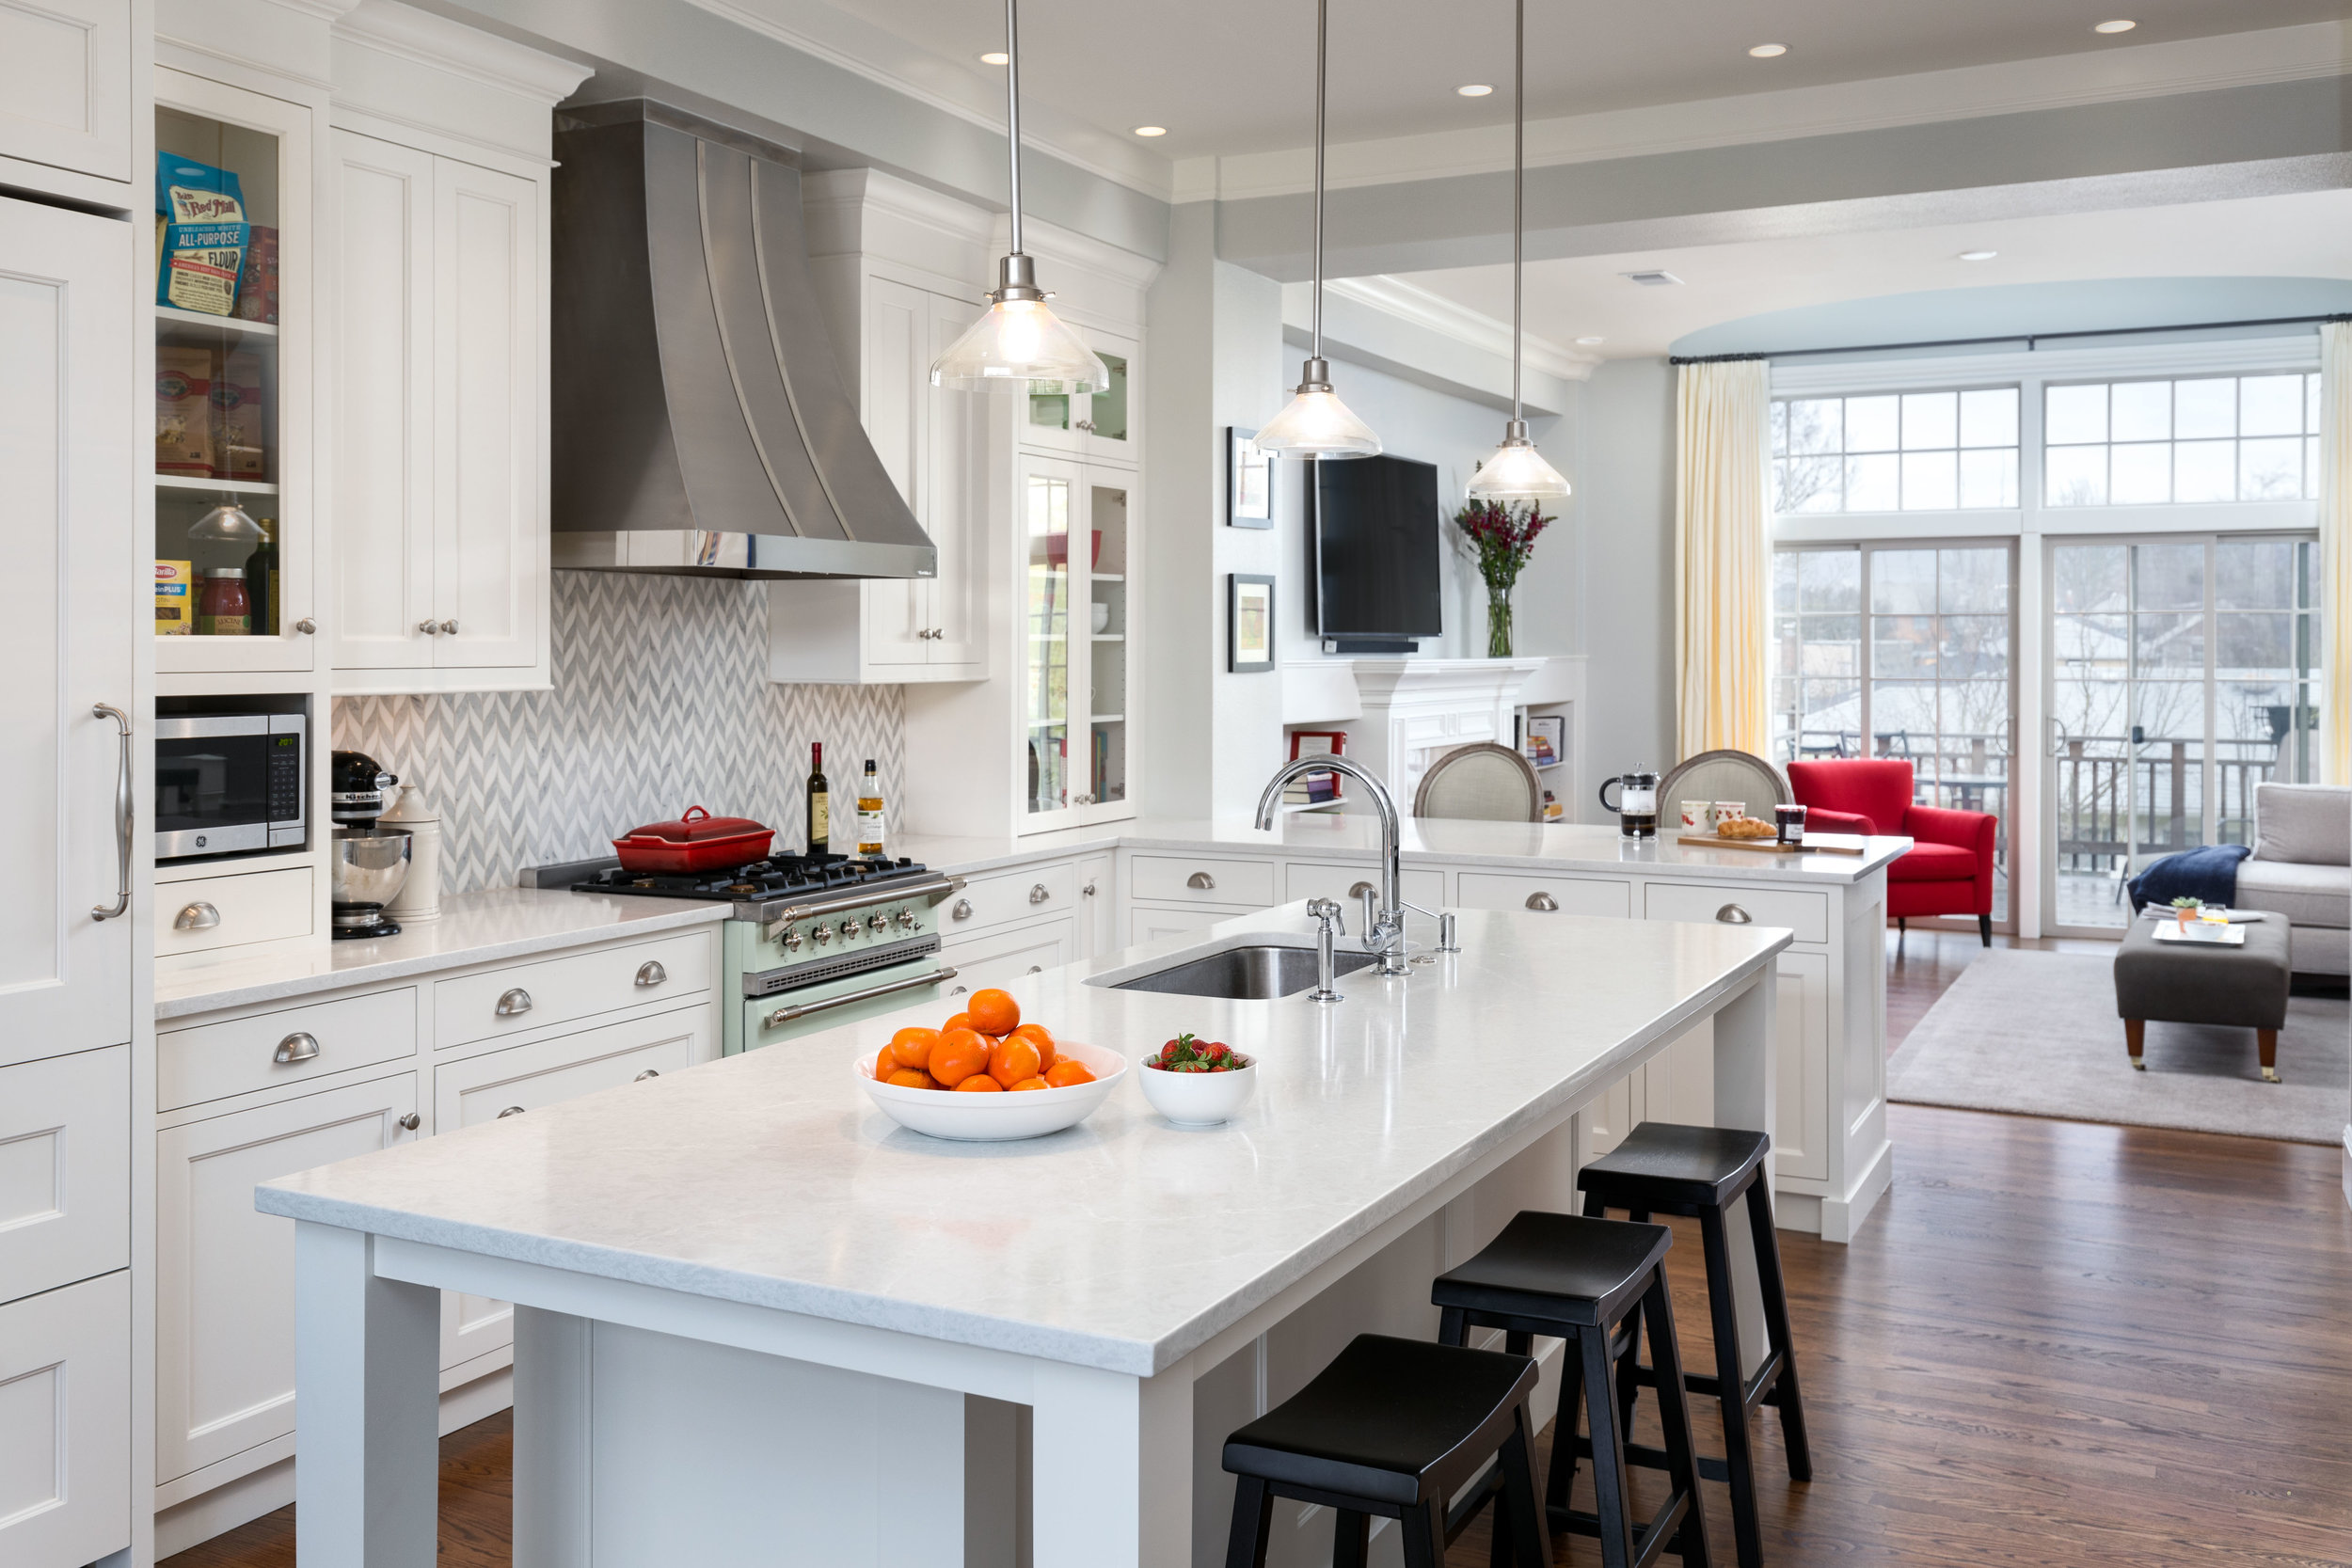 Kitchen island design by Jenni Leasia Interior Design in Portland